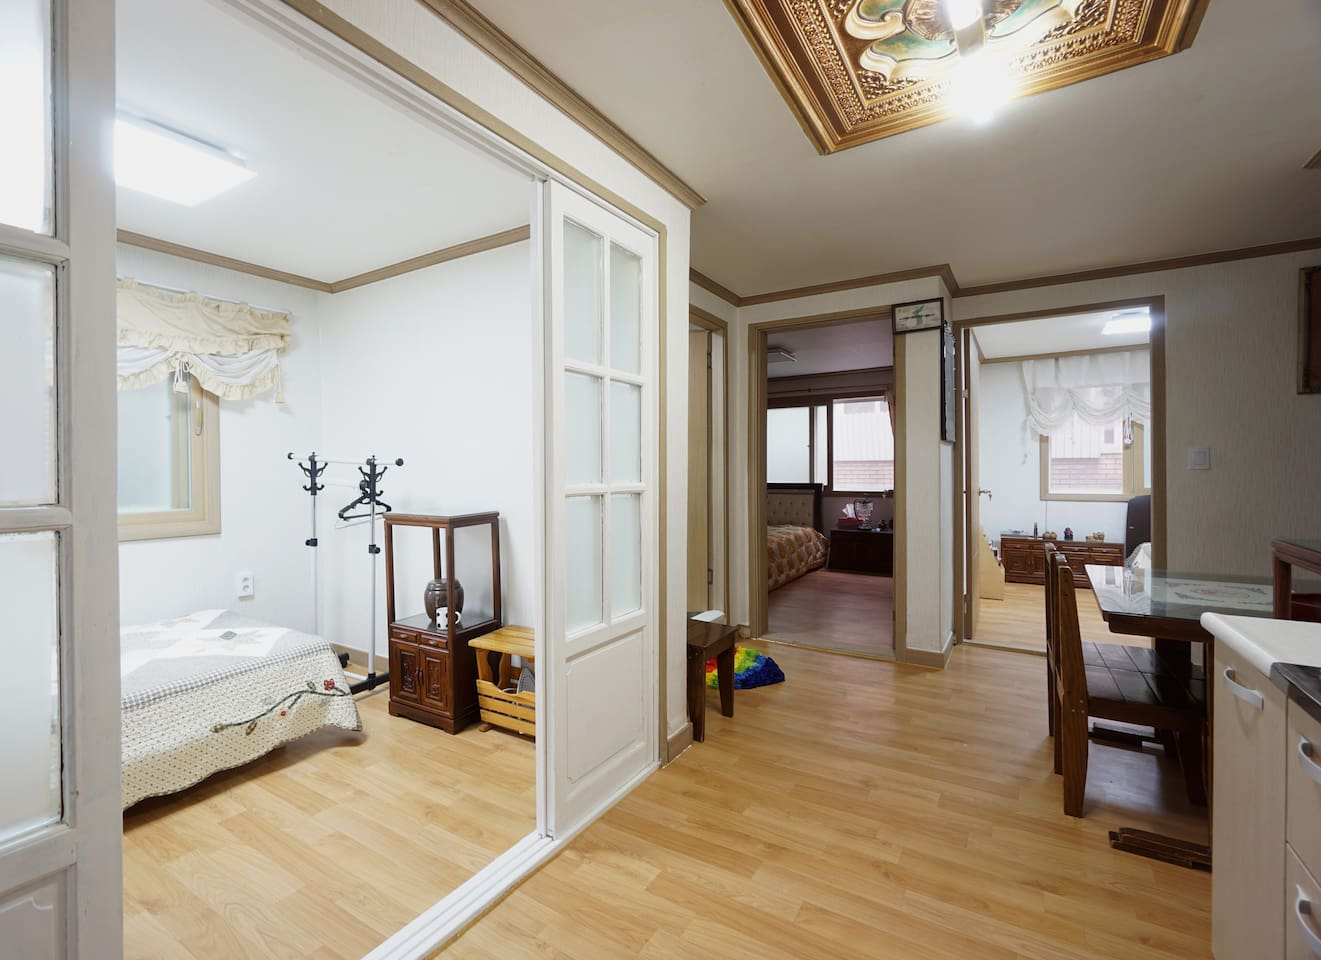 3bed rooms